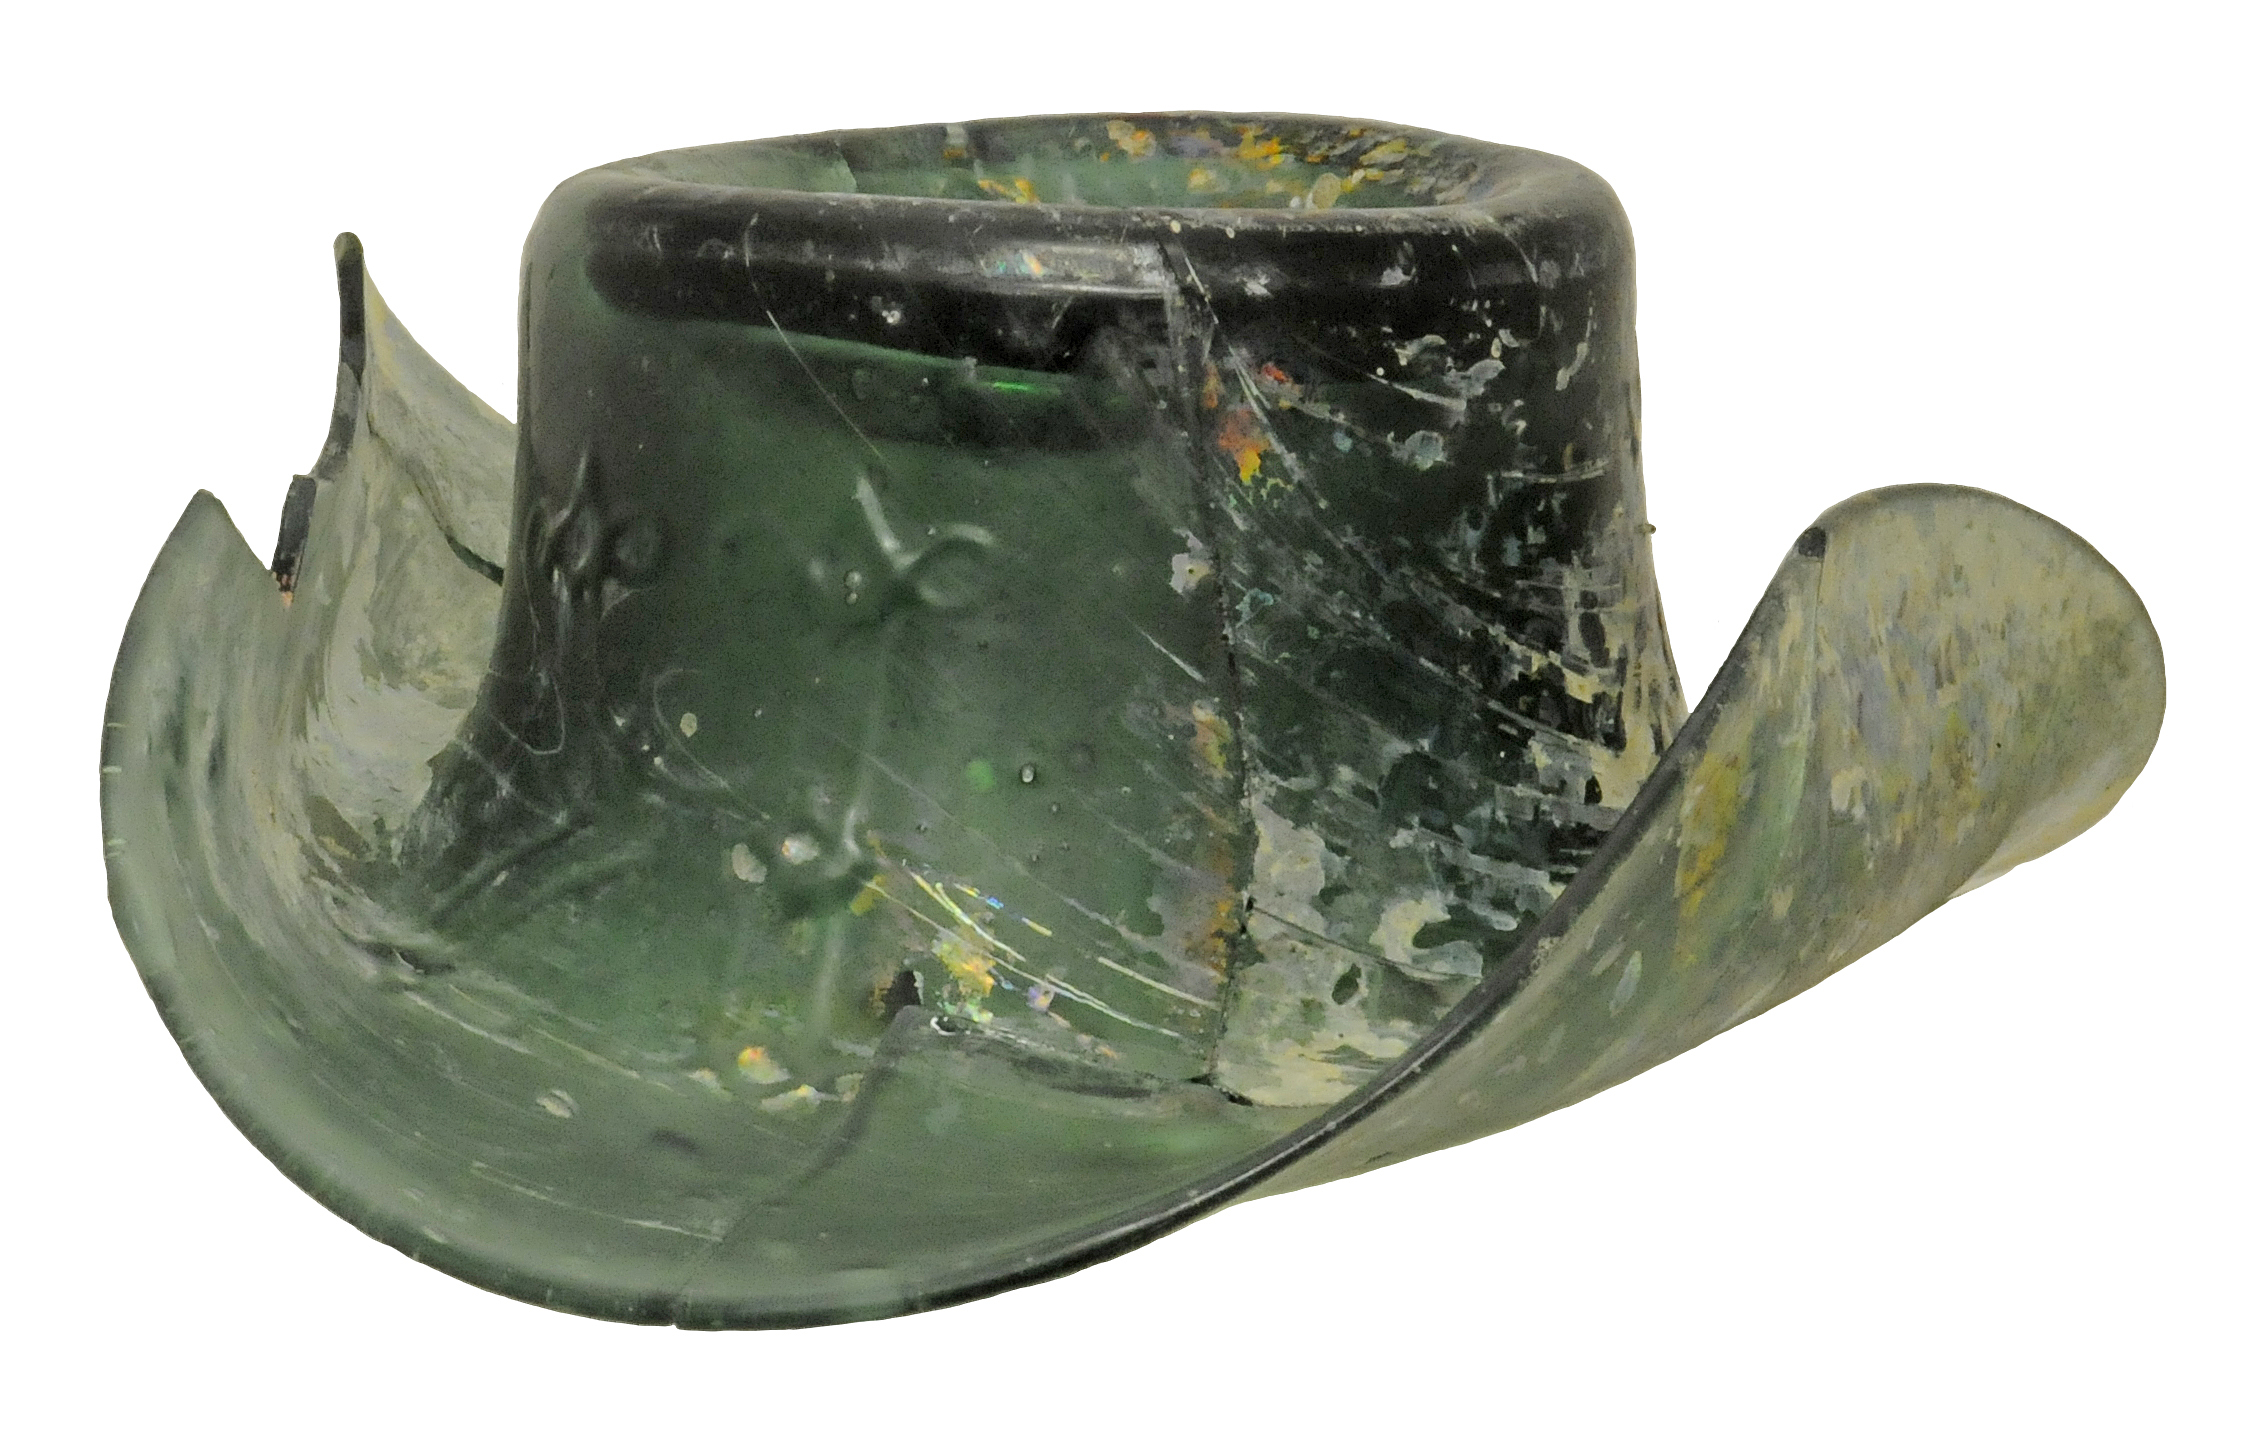 1850s glass hat made by a river wards glassmaker